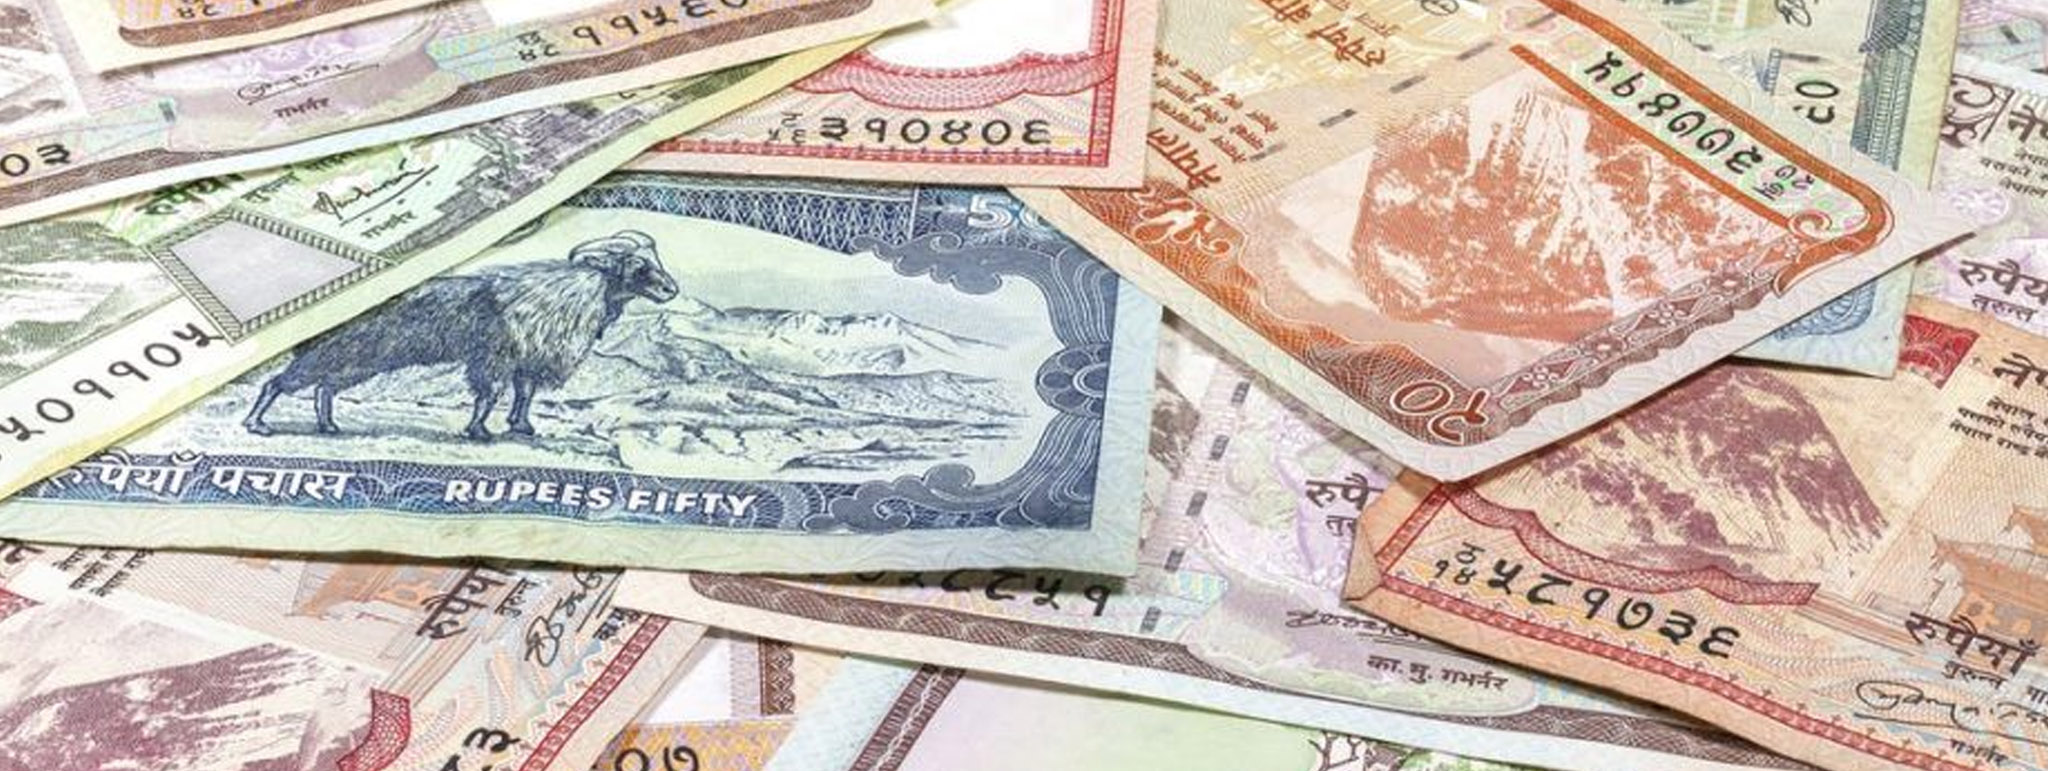 Nepal S Currency Is Nepalese Ru Merchants And Service Providers Use Nrp Nrs Rs To Denote The Price In